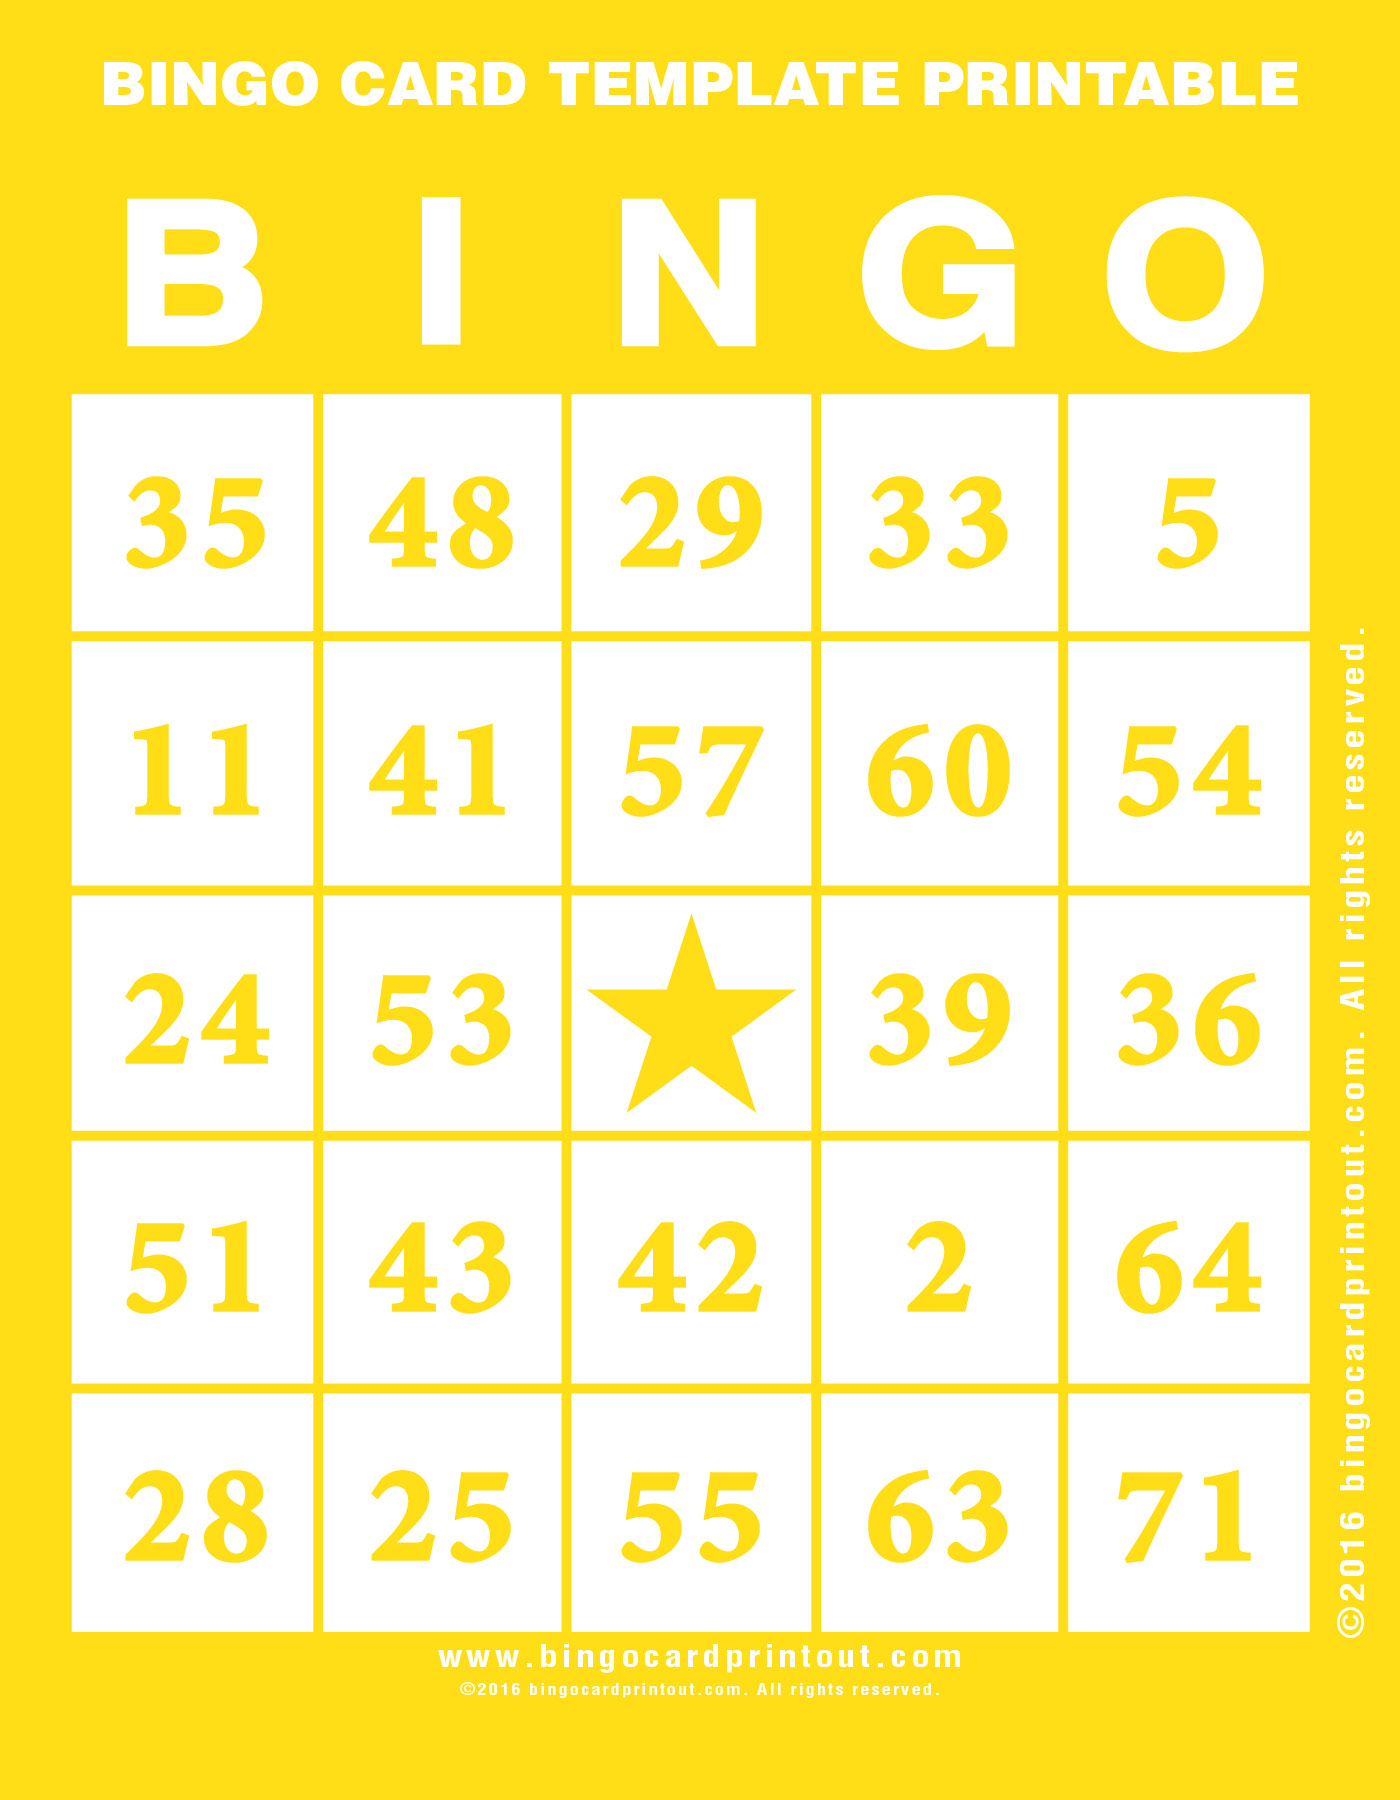 Bingo Card Template Printable - BingoCardPrintout.com